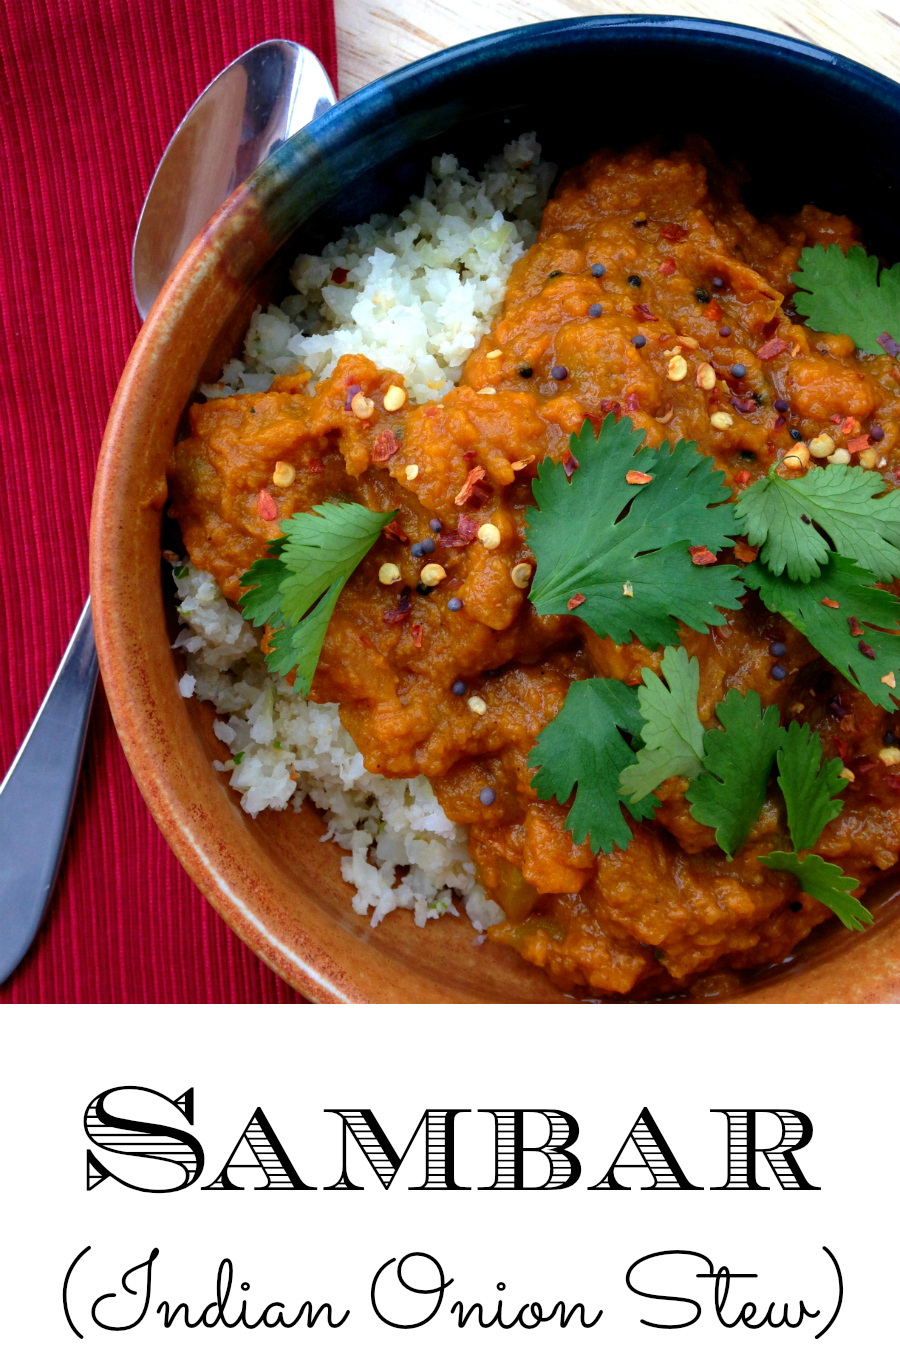 GrokGrub.com - Sambar (Indian Onion Stew) | Paleo